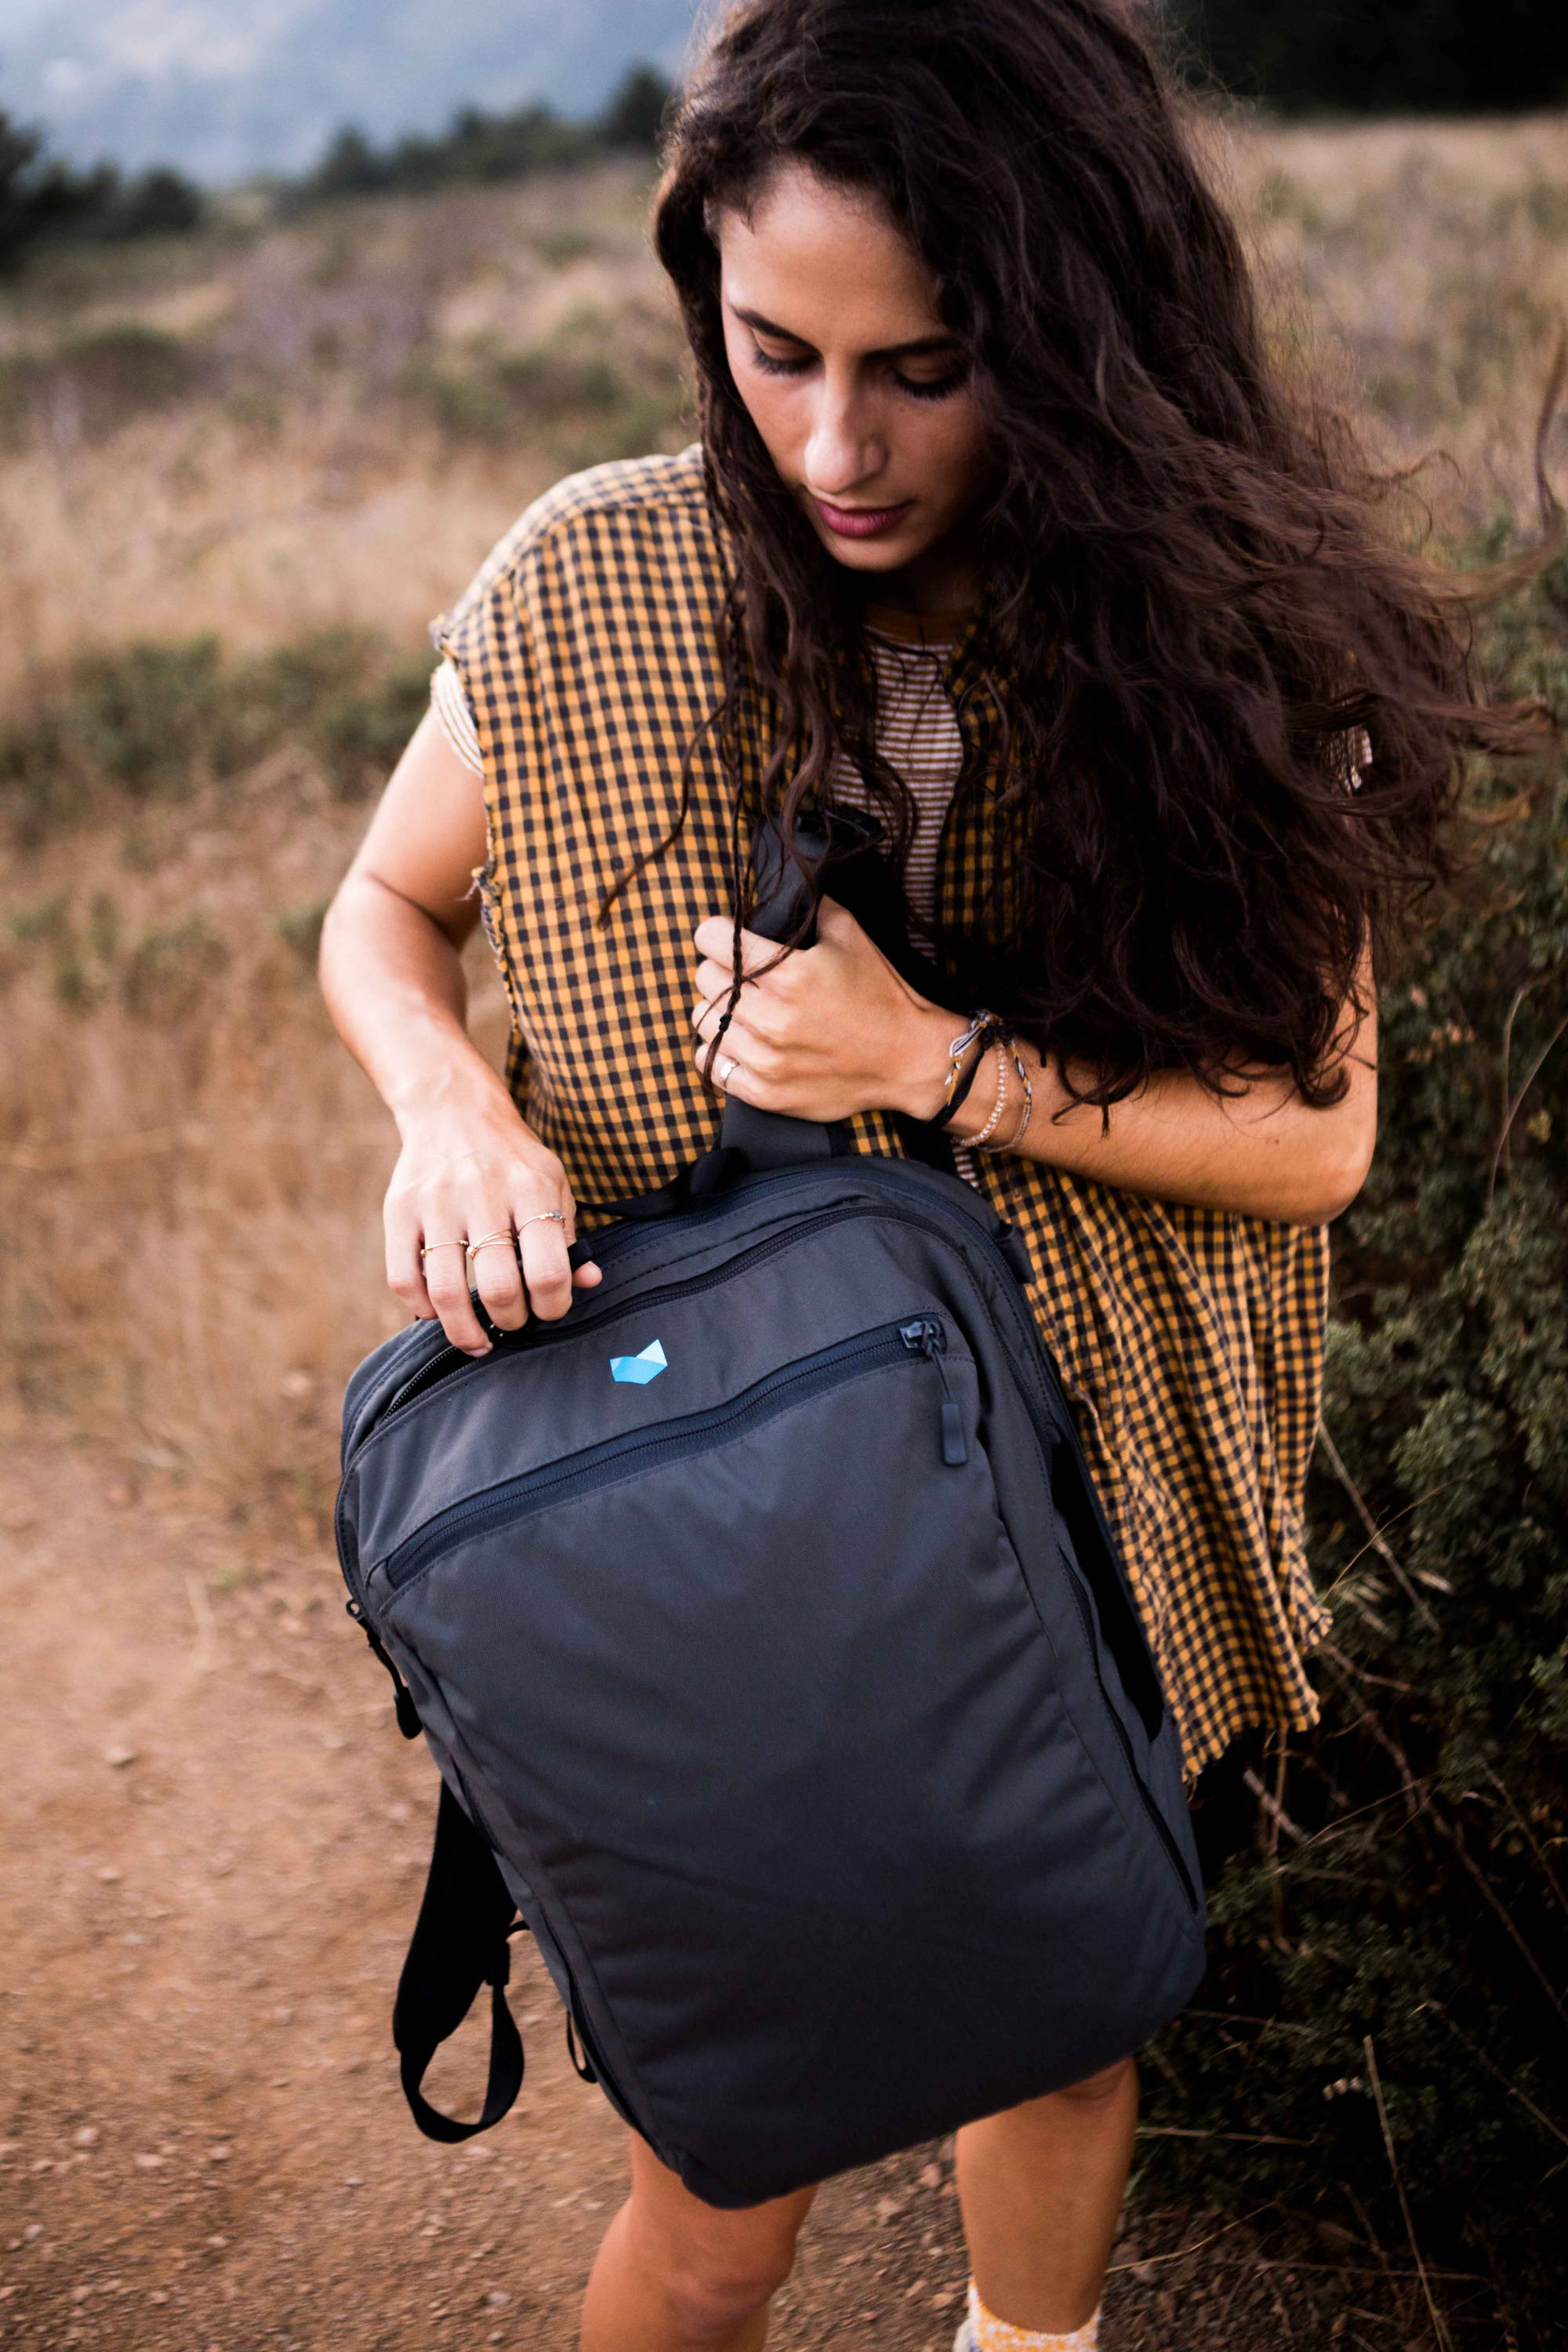 Minaal Daily Bag - Backpacks for women